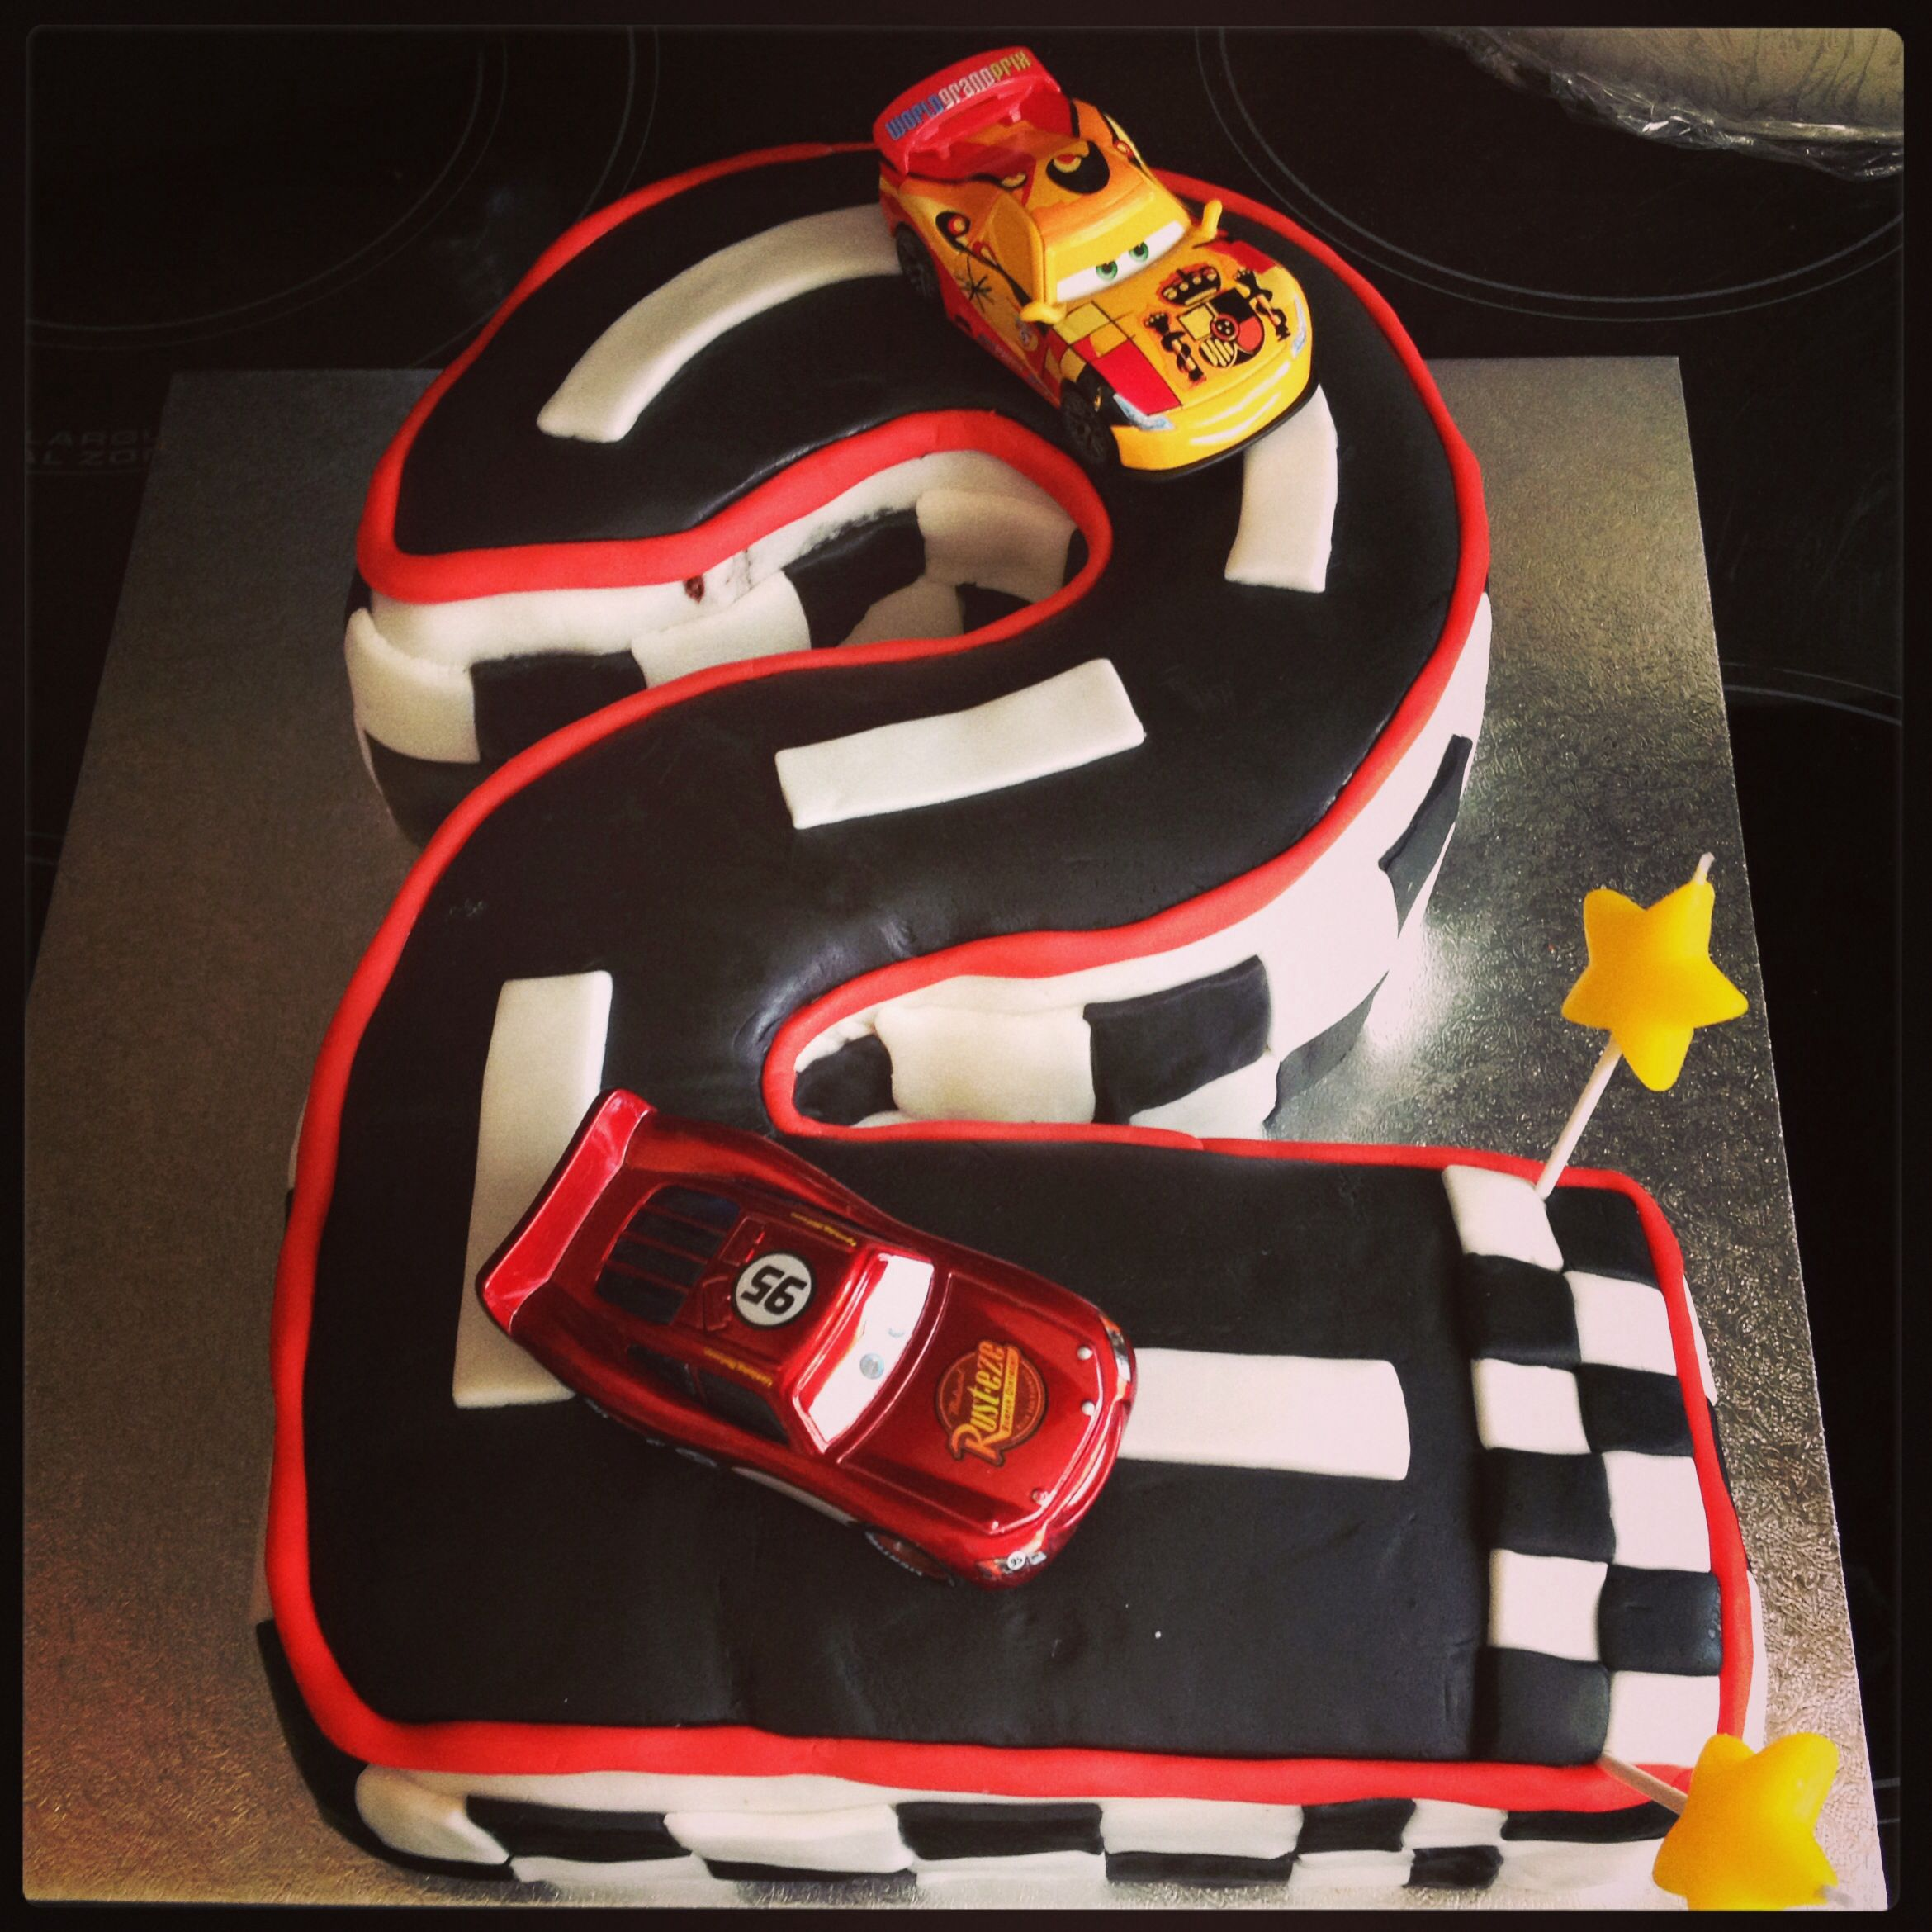 Disney cars number 2 birthday cake | Liam\'s 3rd Birthday Party ...